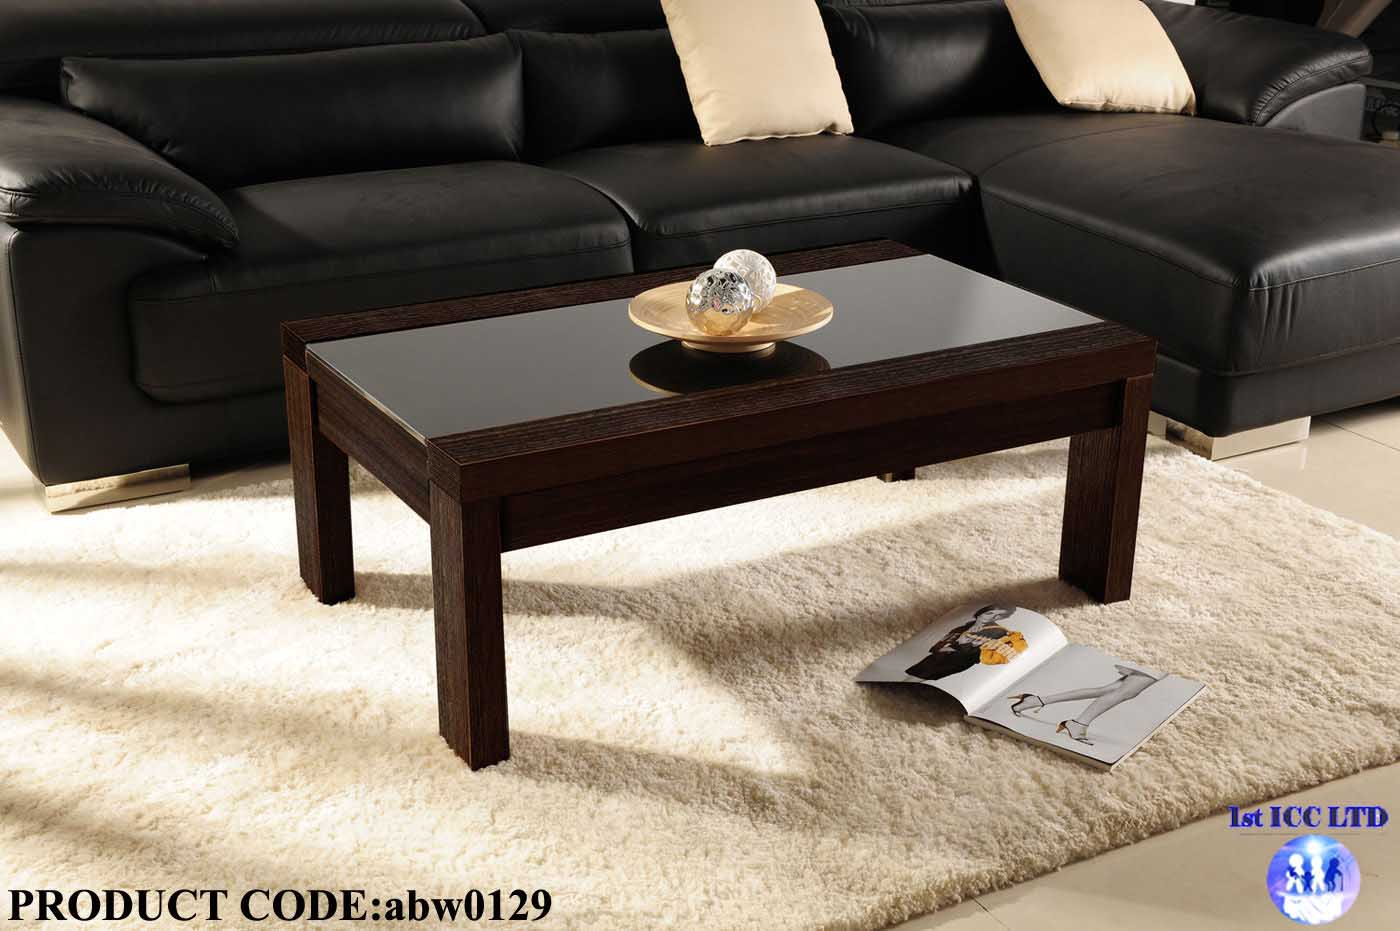 coffee tables ideas black espresso dark brown with sofa pillow cream rudibela themes carpet fur feather best end for couch laura ashley doona covers leons storage ott leon